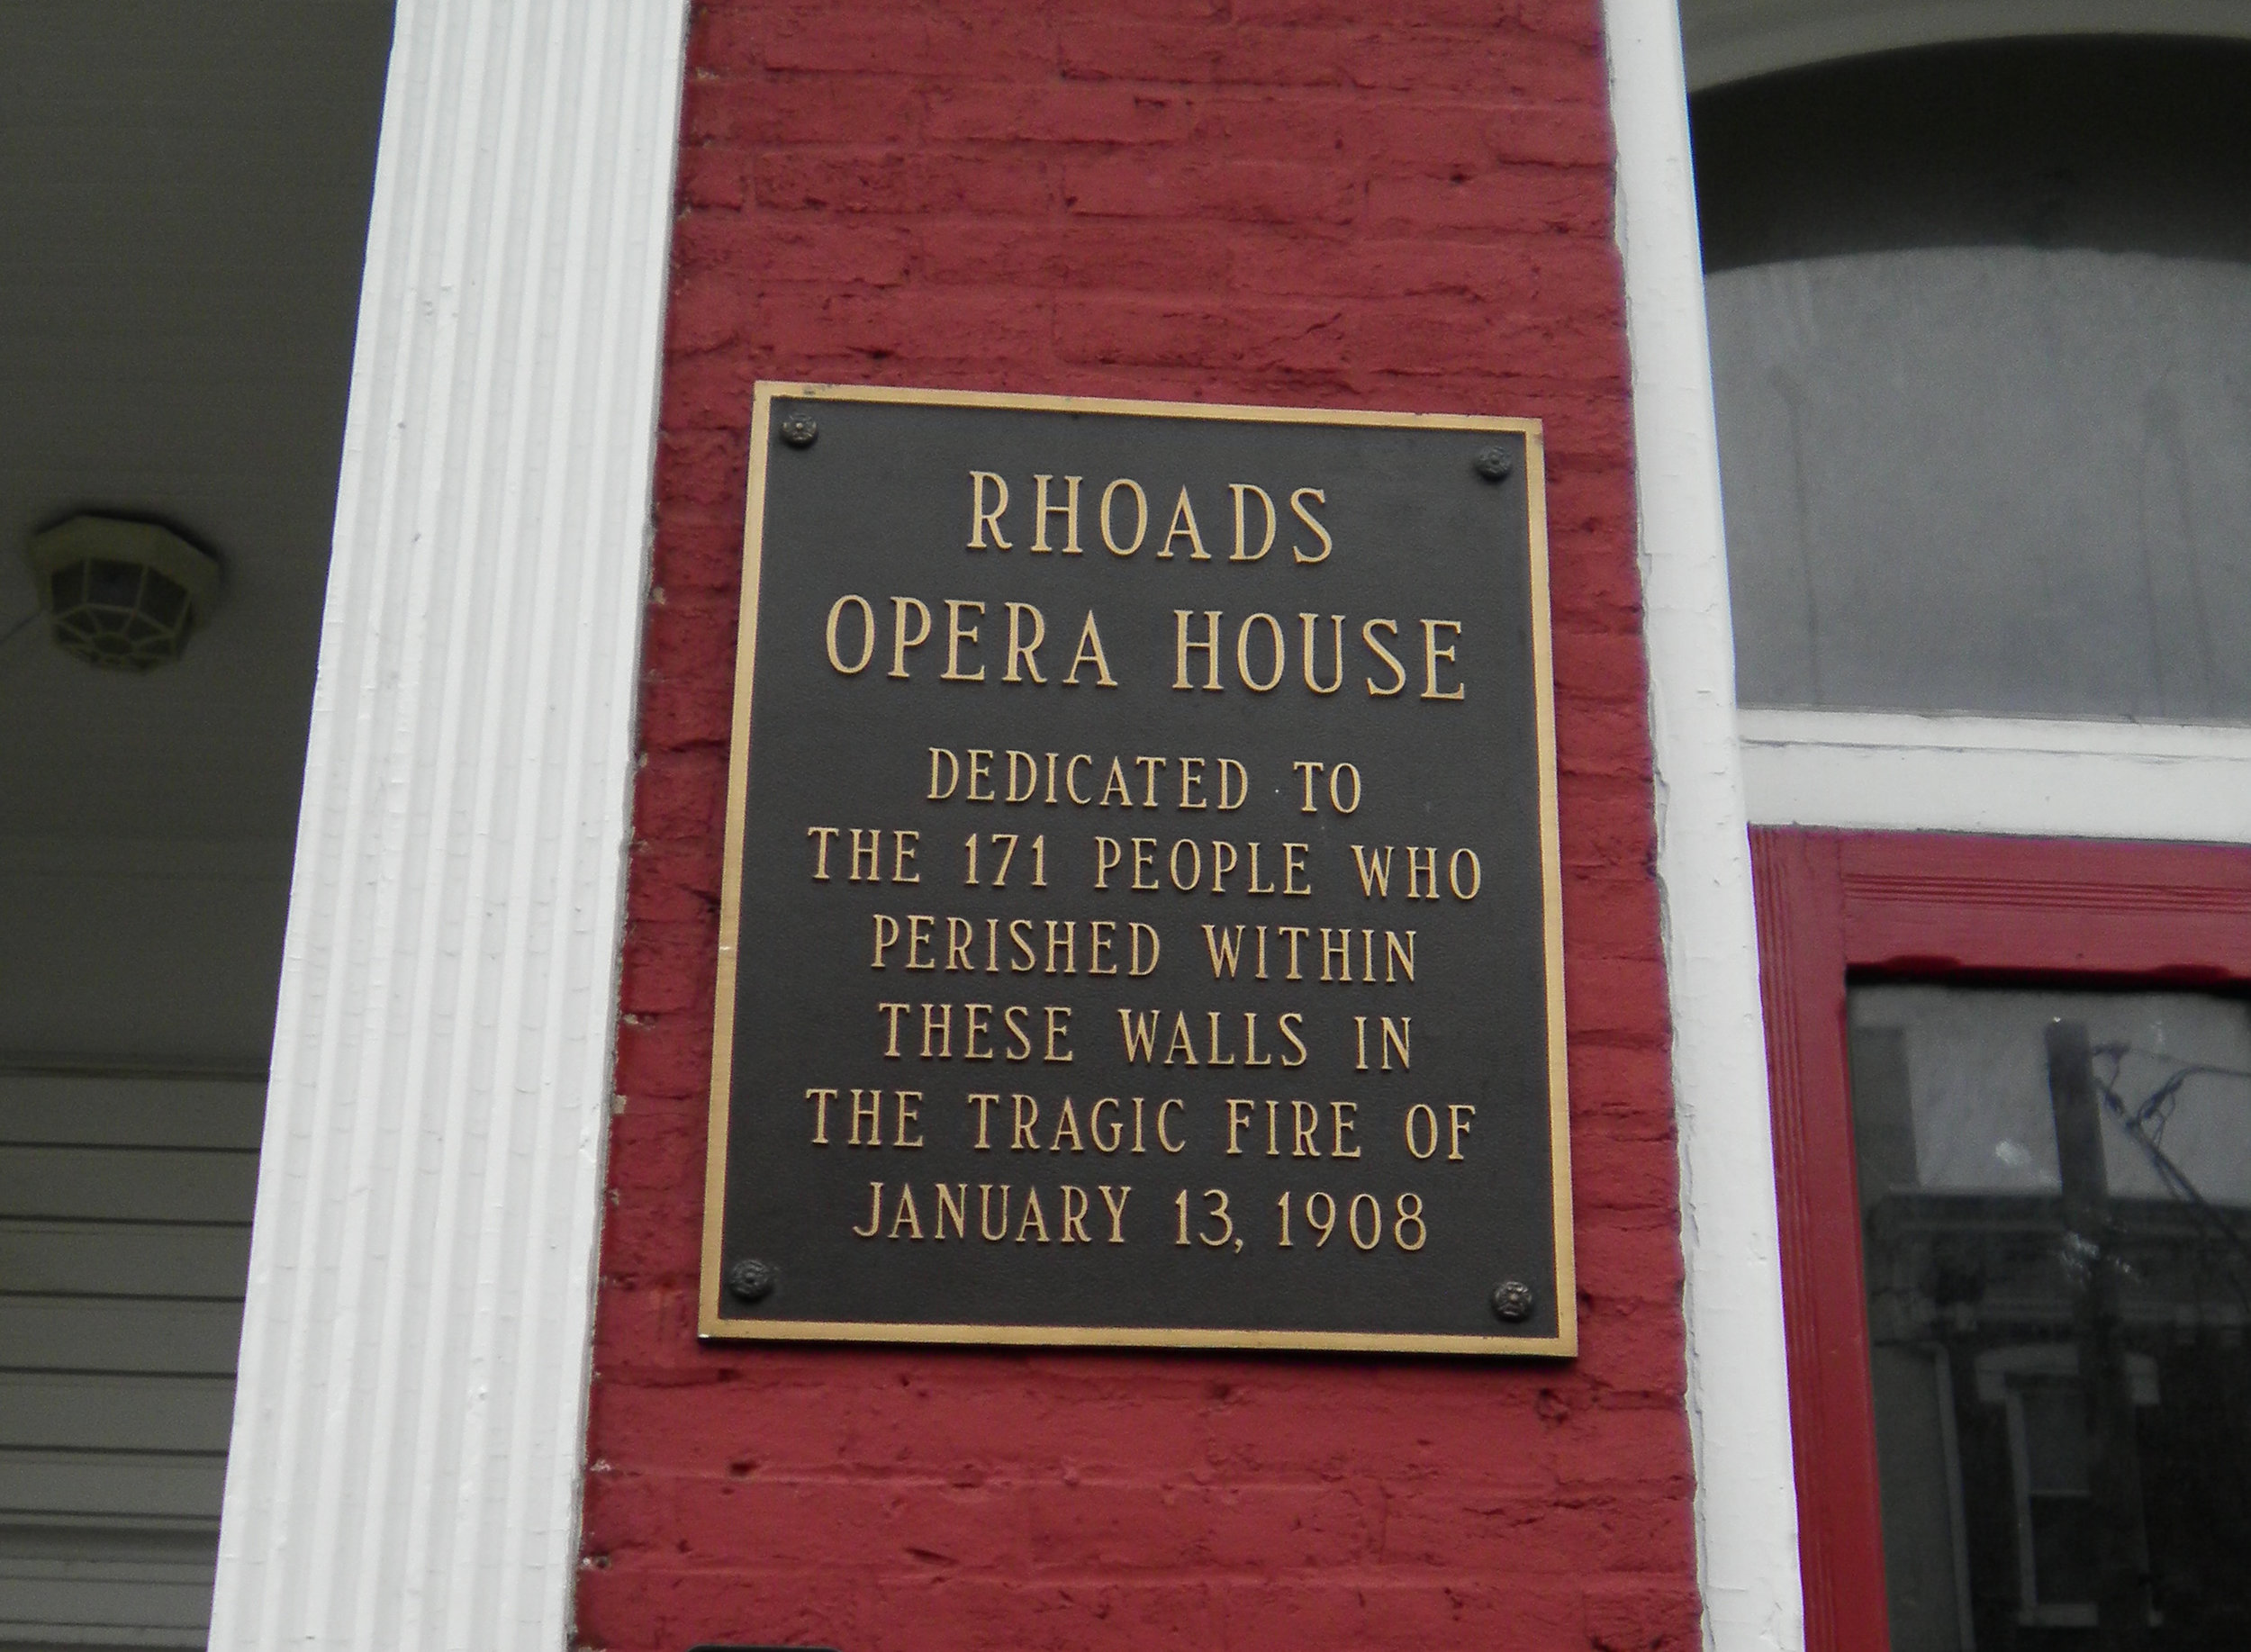 """The plaque on the former site of the Rhoads Opera House - """"Dedicated to the 171 people who perished within these walls in the tragic fire of January 13, 1908""""."""